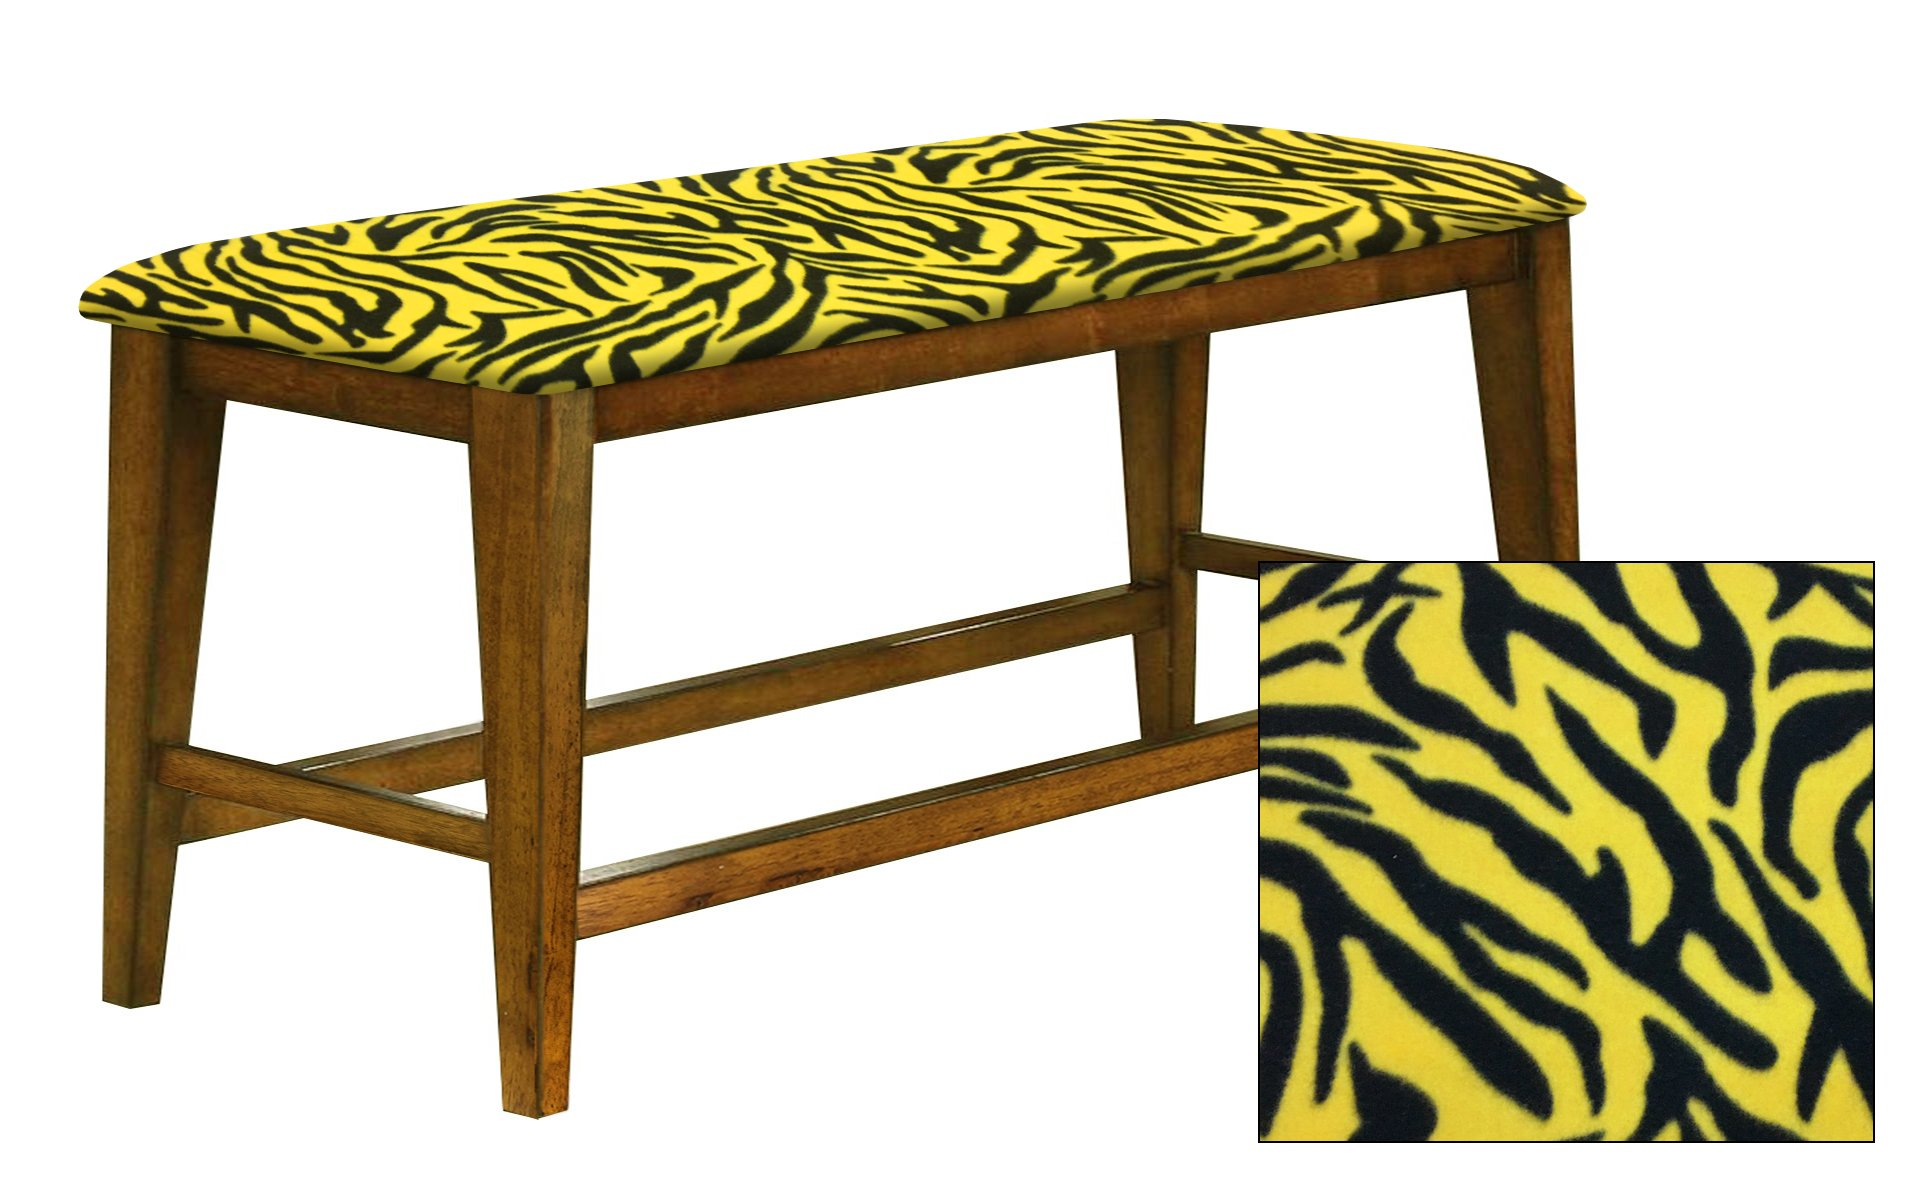 """Counter Height 25"""" Tall Universal Bench in an Oak Finish Featuring a Padded Seat Cushion With Your Choice of an Animal Print Fabric Covered Seat Cushion (Yellow Zebra Fleece)"""